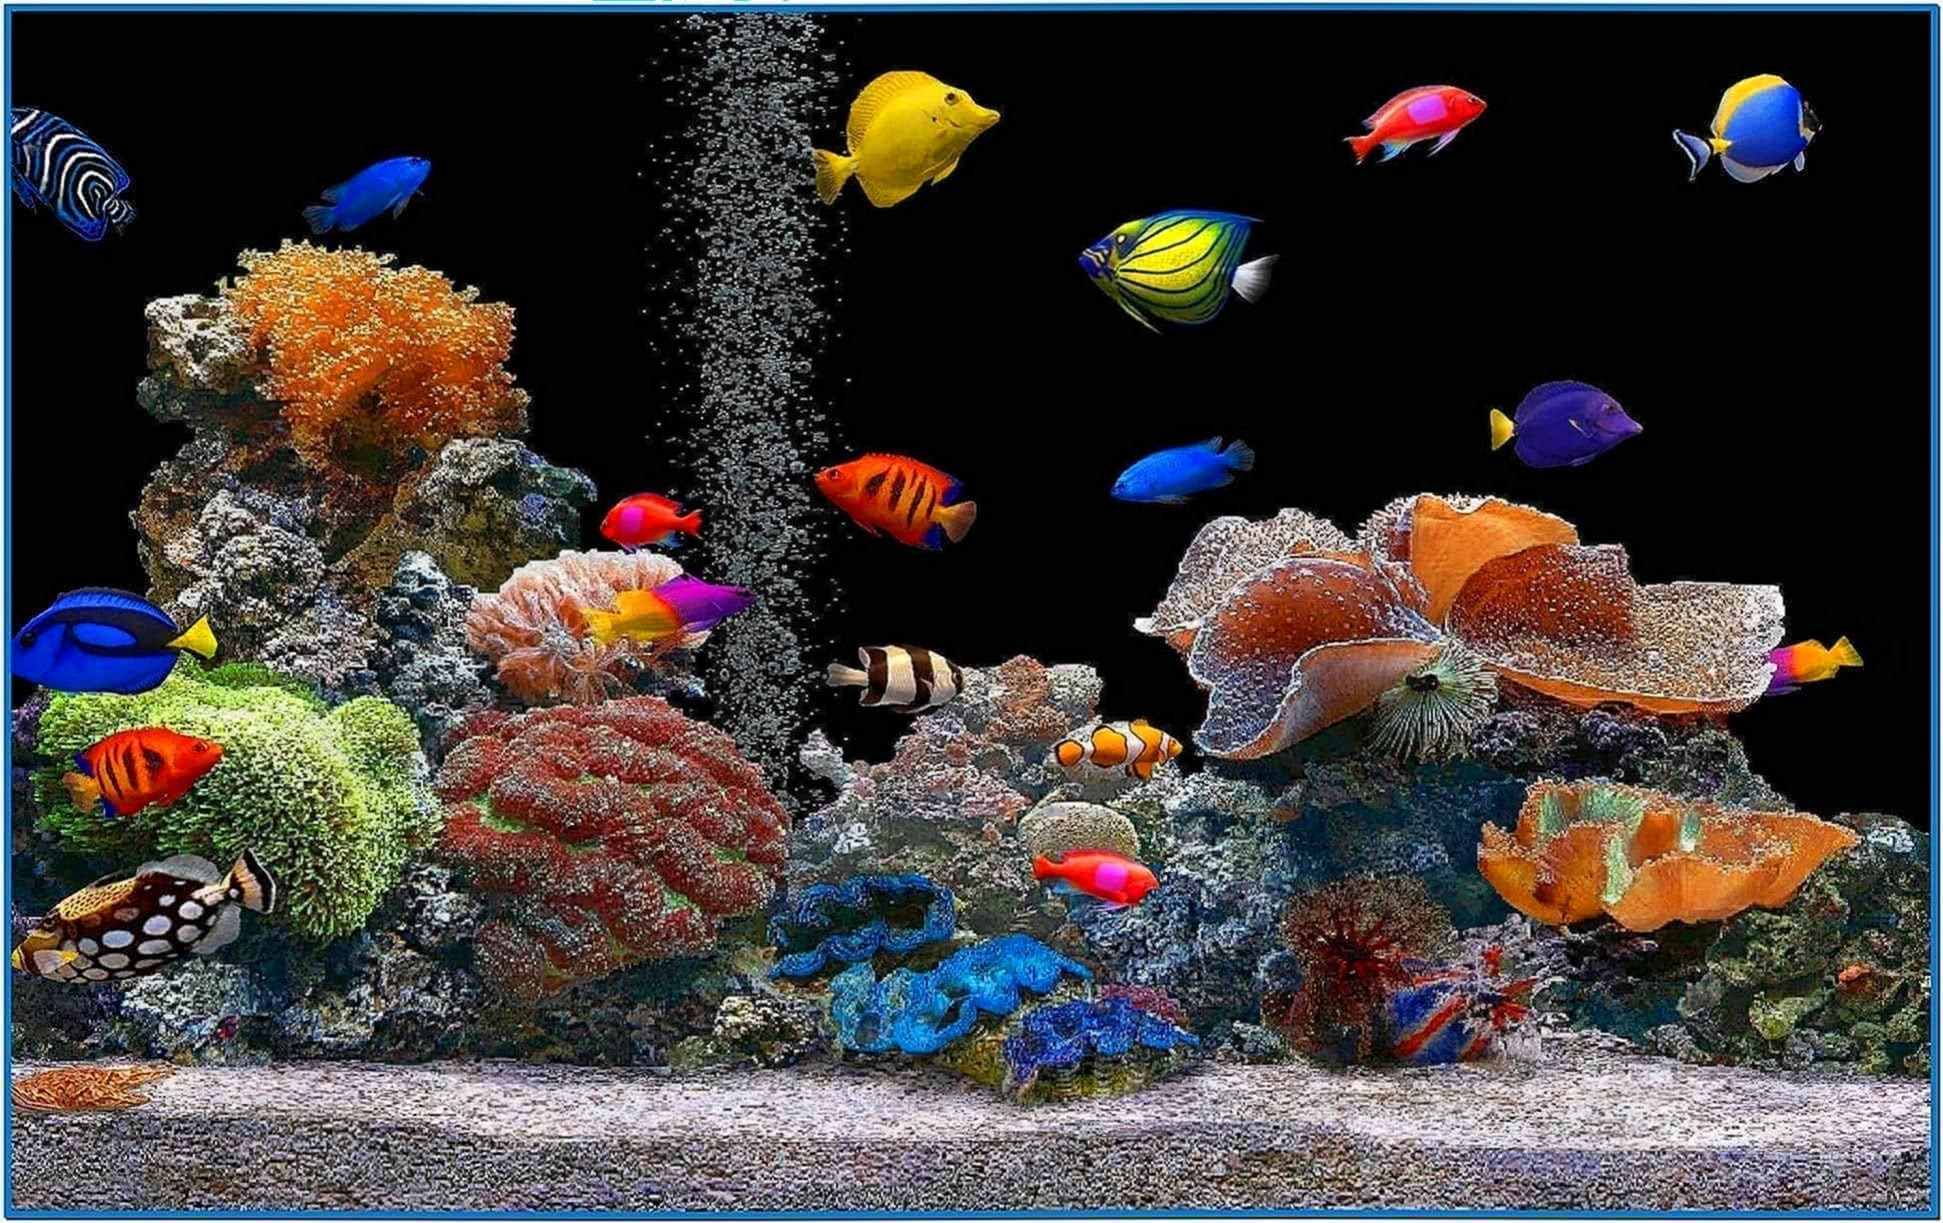 Full Hd Screensaver Aquarium Download Free